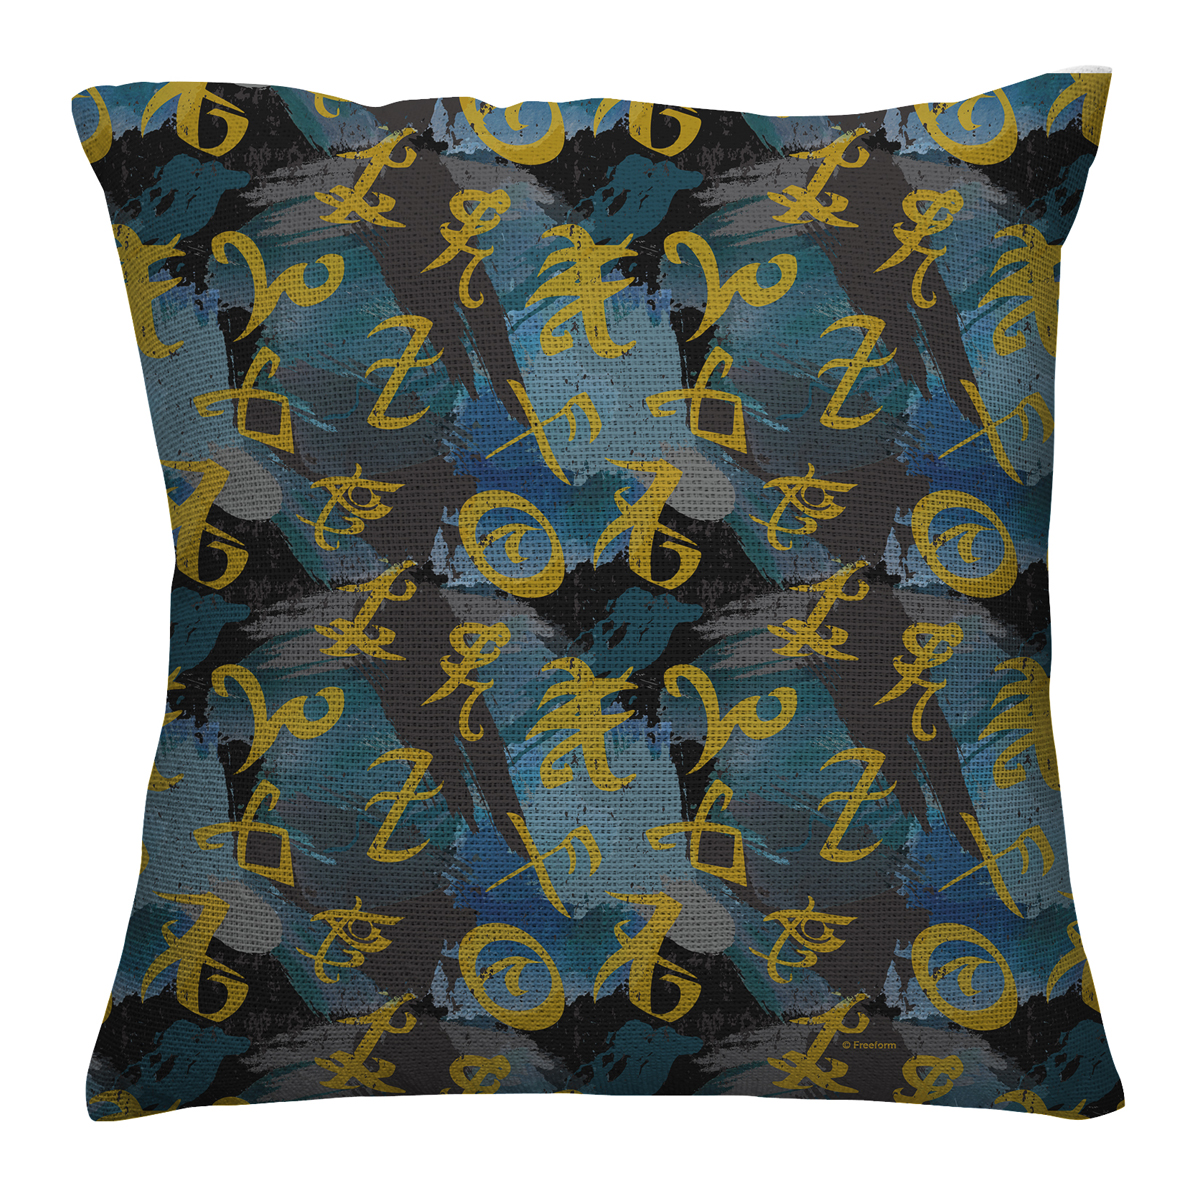 Shadowhunters Runes Allover Throw Pillow (16x16)